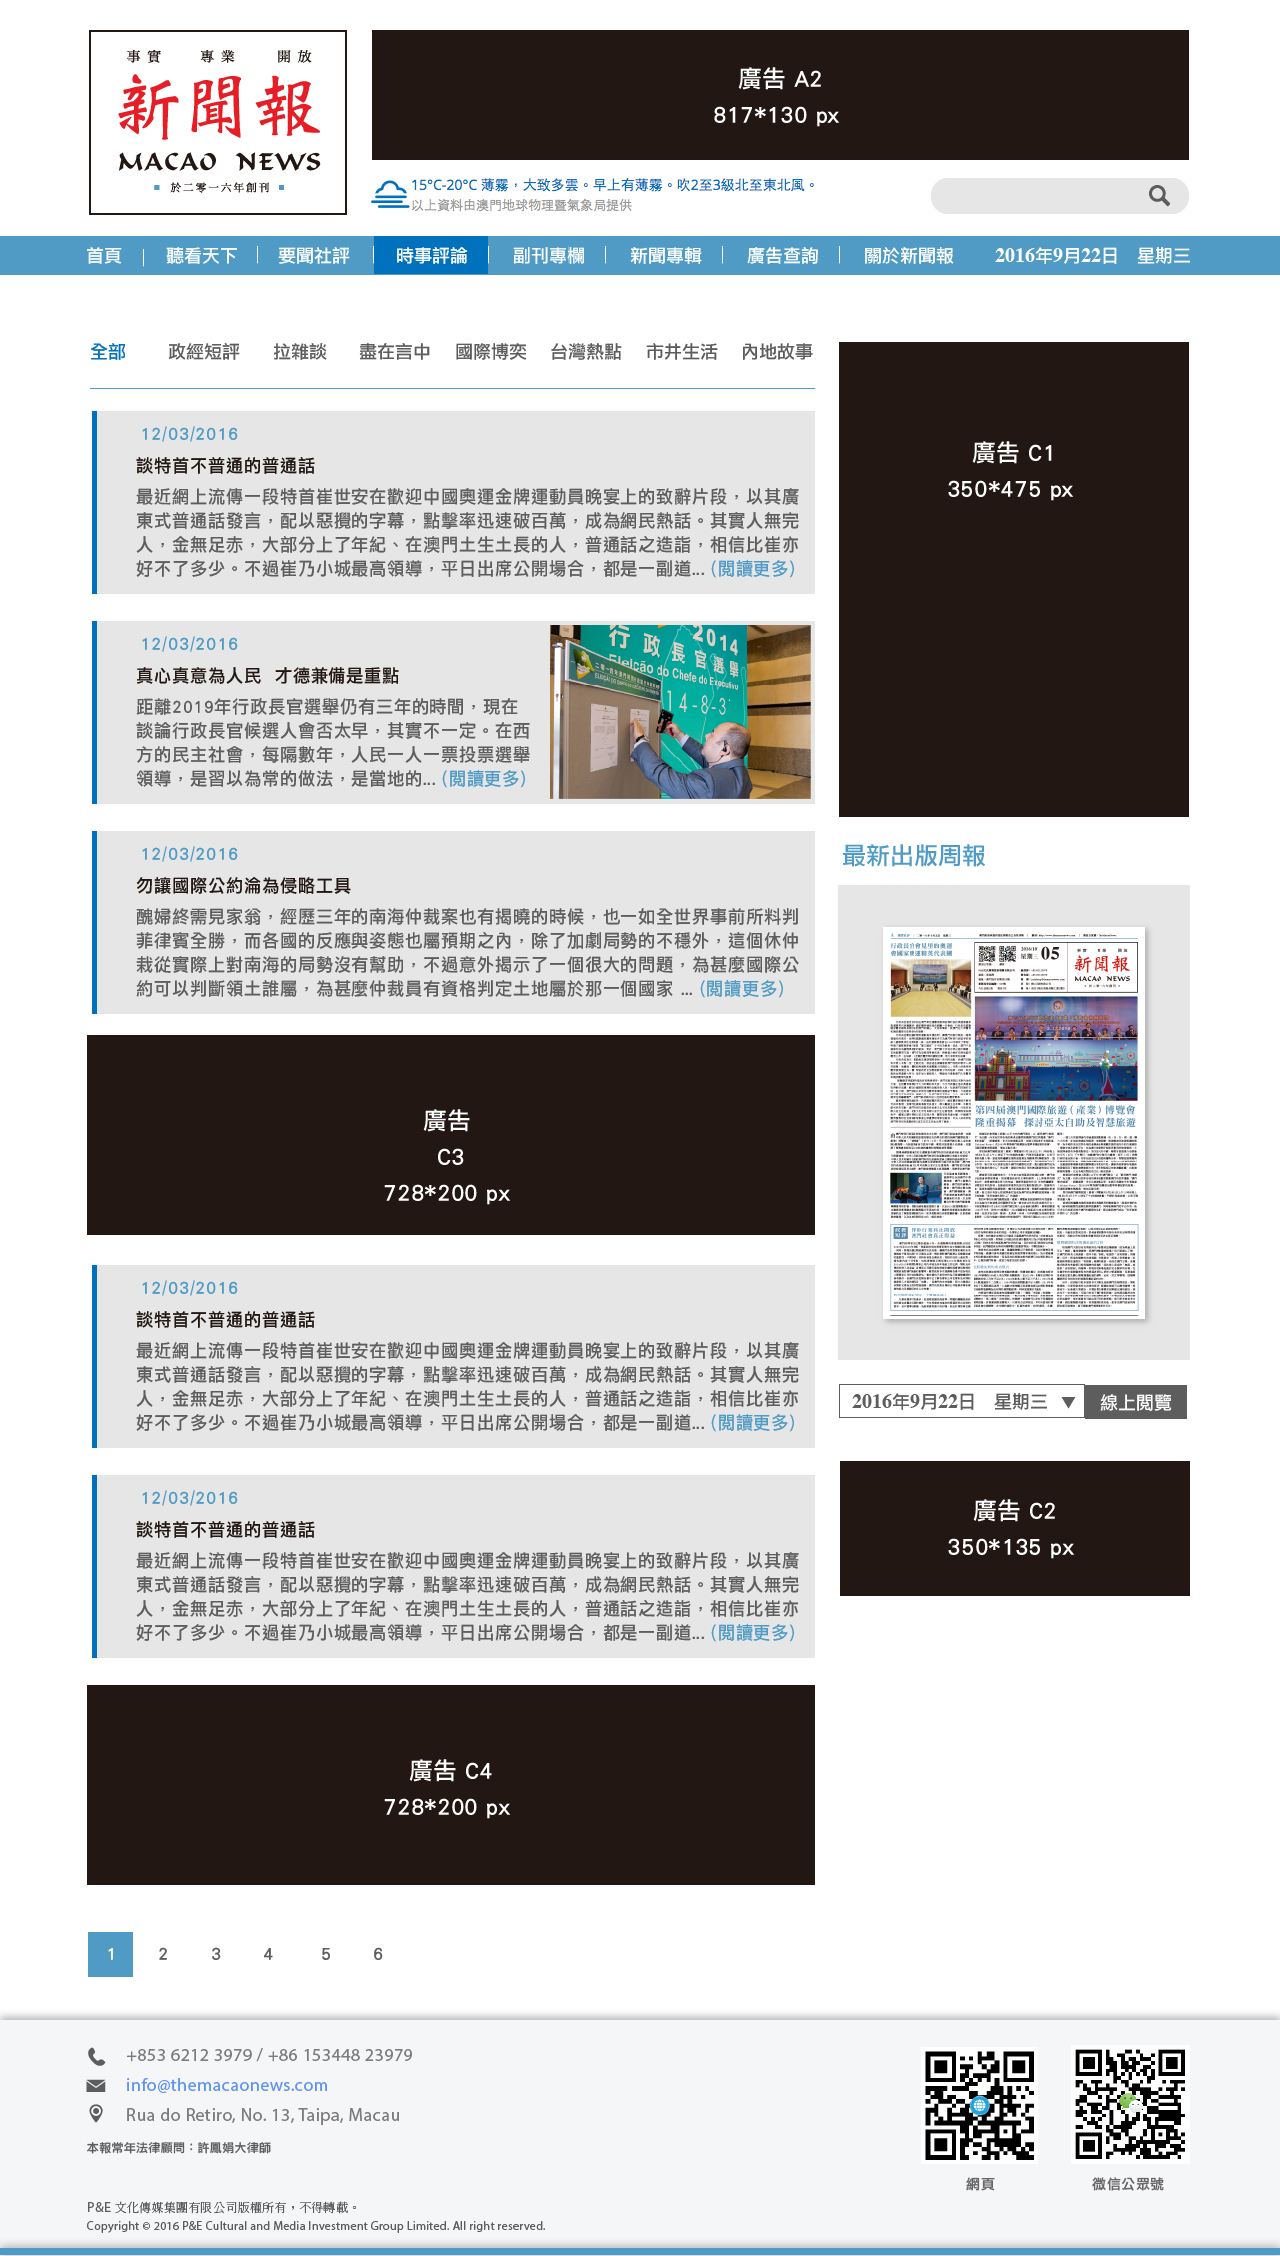 macao-news-website-ad-05